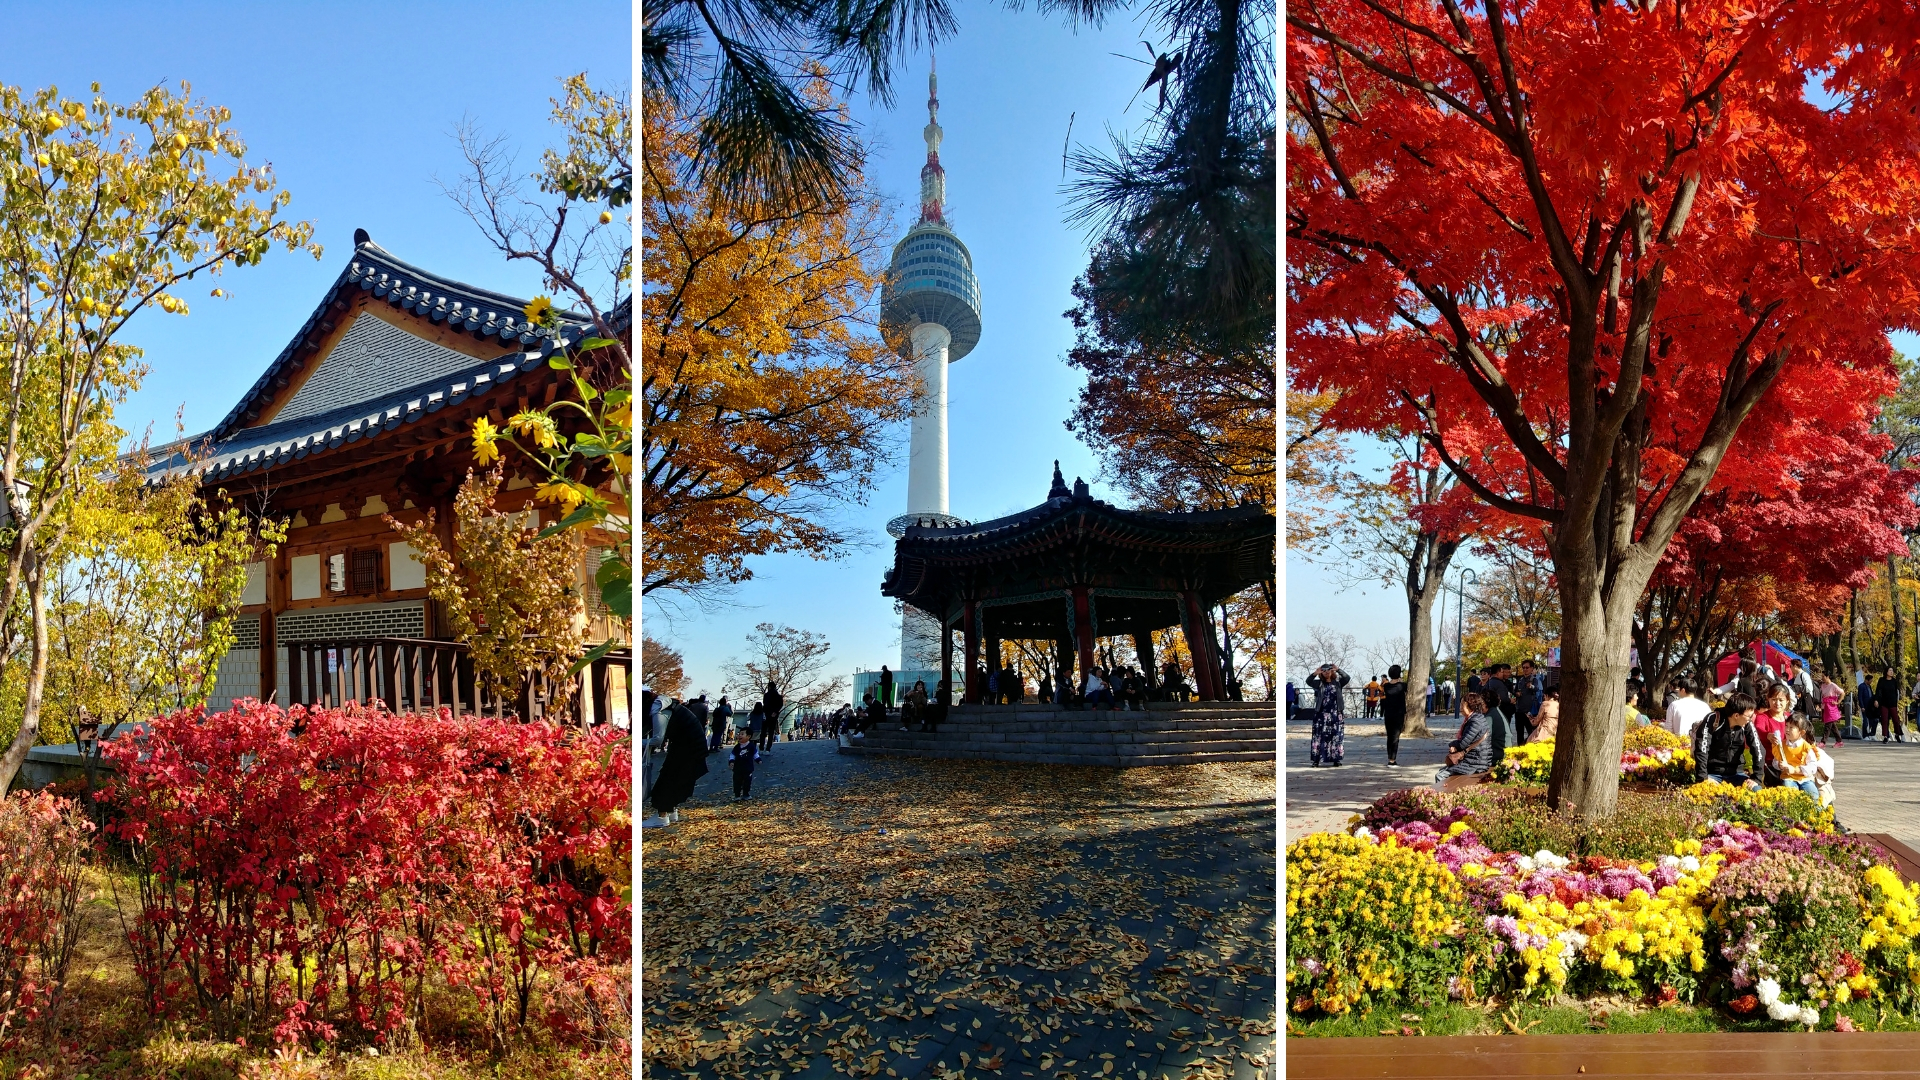 seoul tower coree du sud blog voyage arpenter le chemin